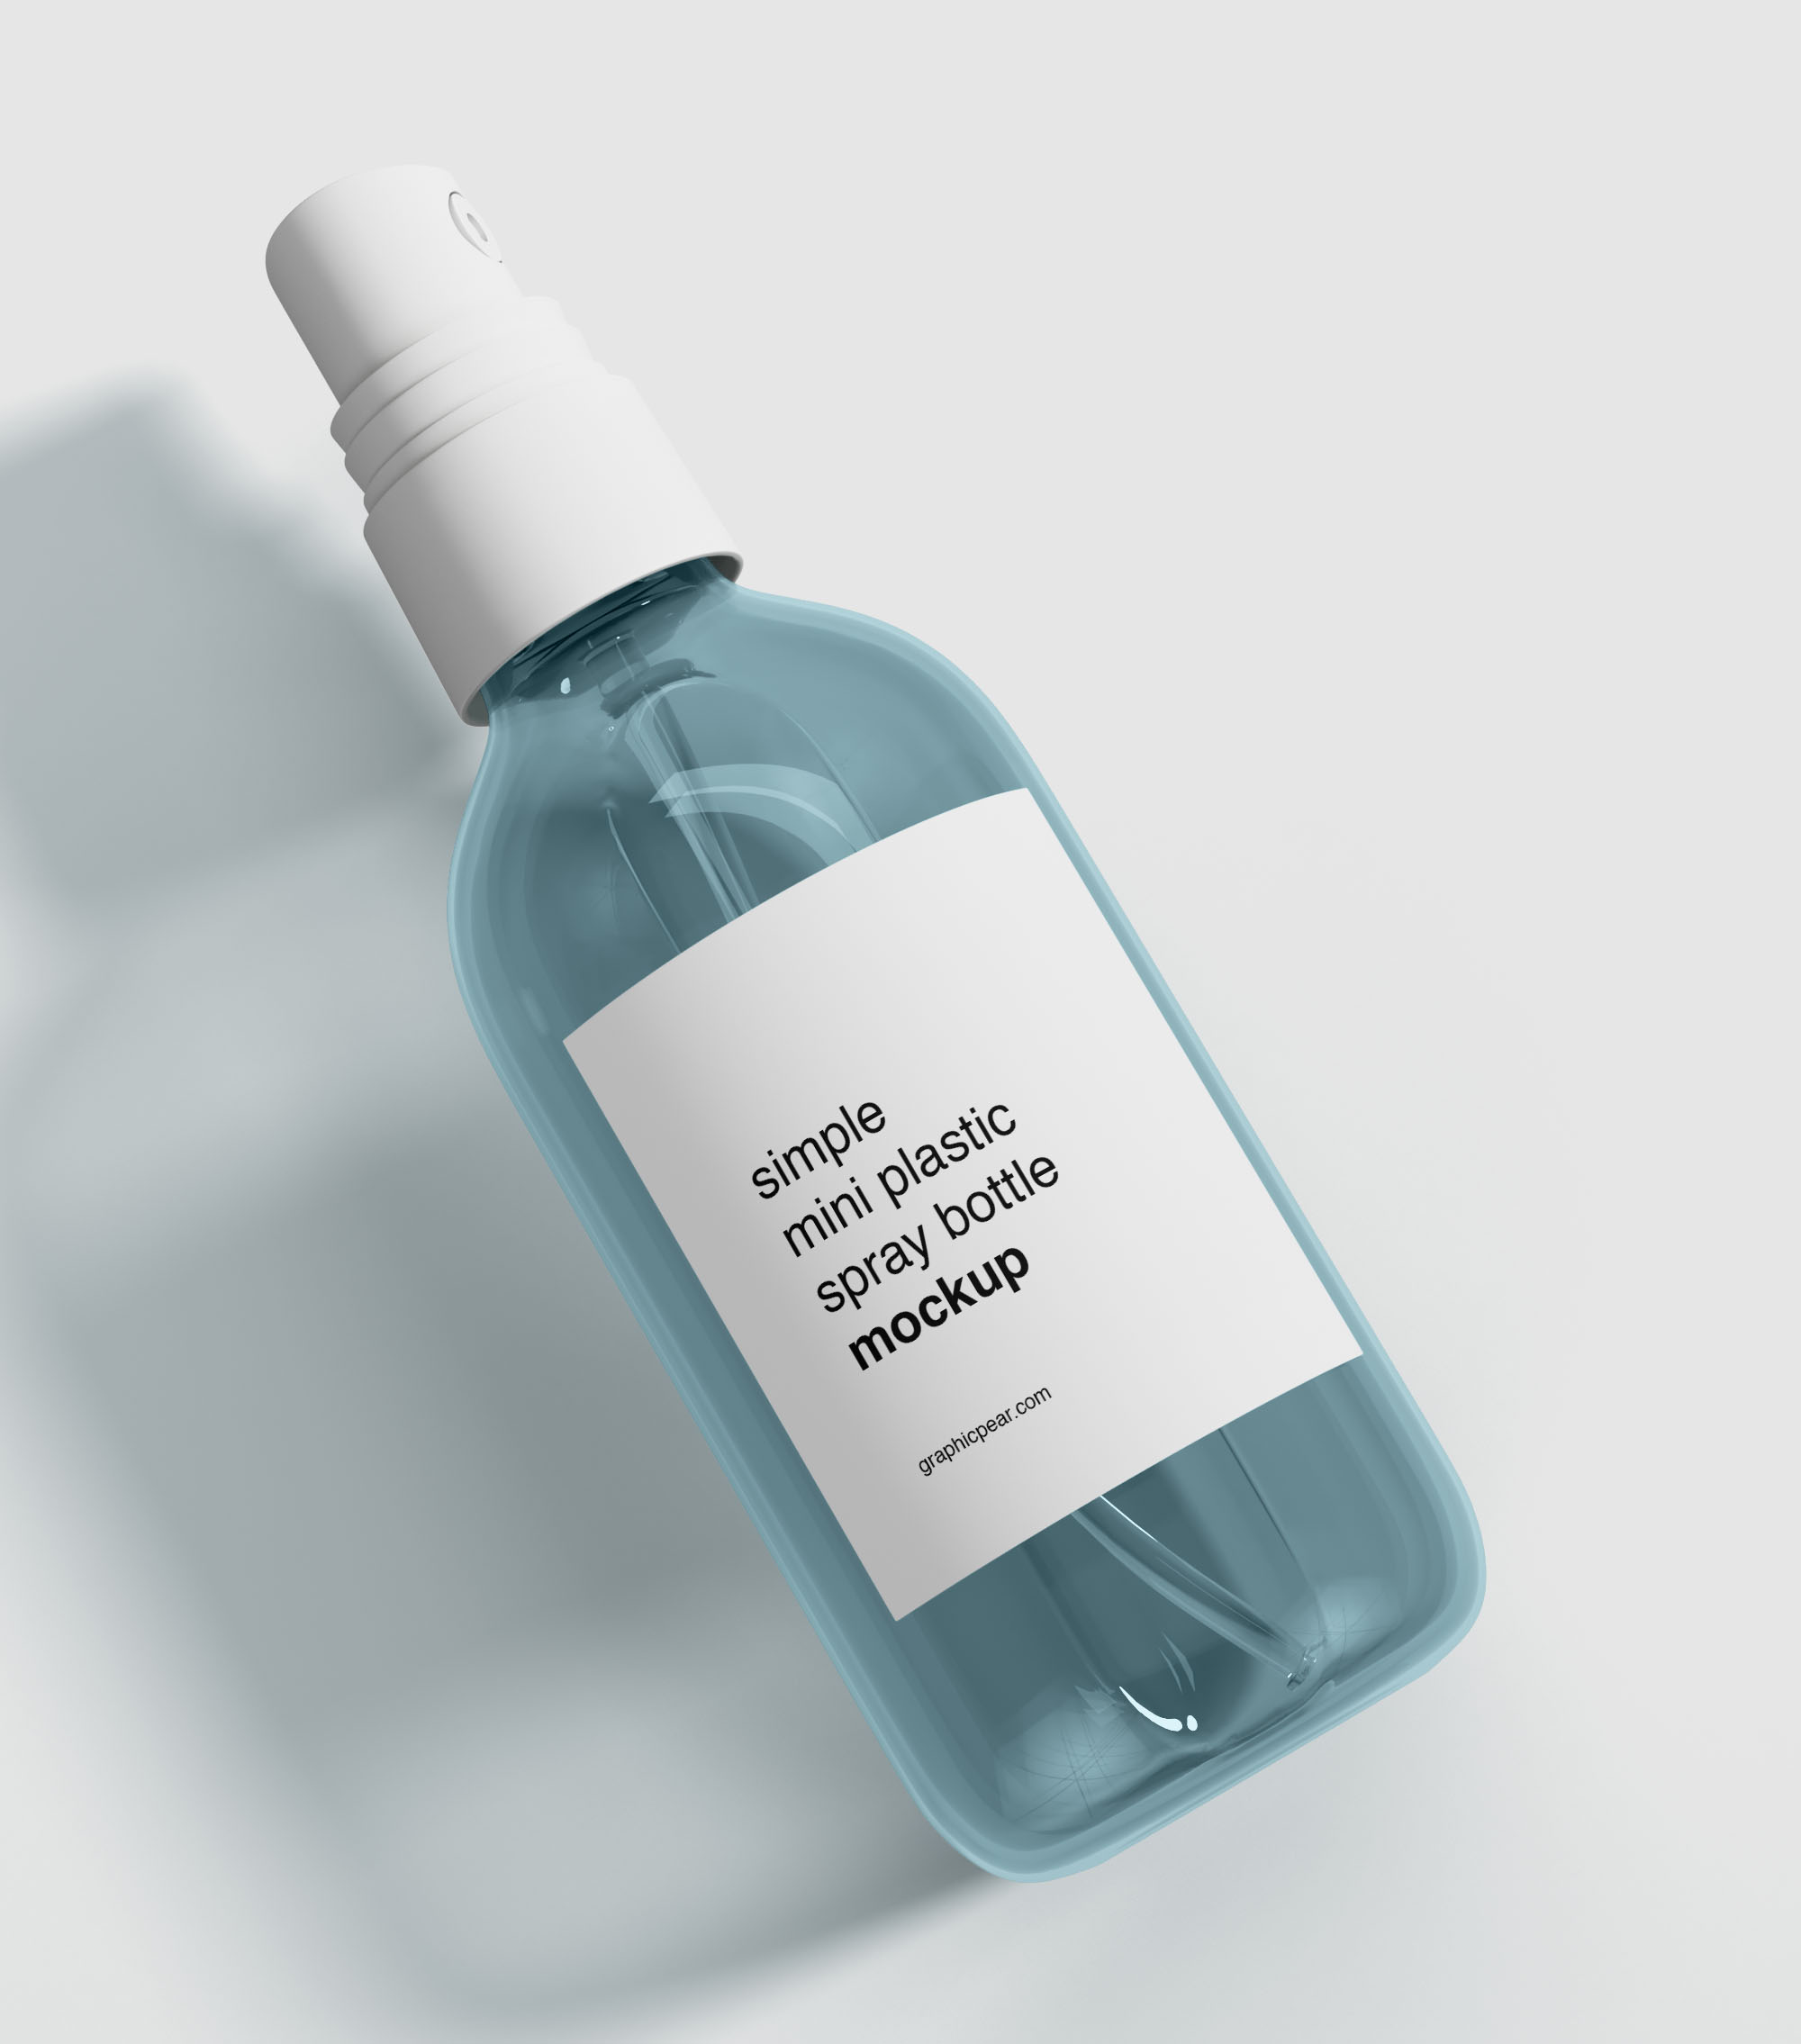 Mini Plastic Spray Bottle Mockup